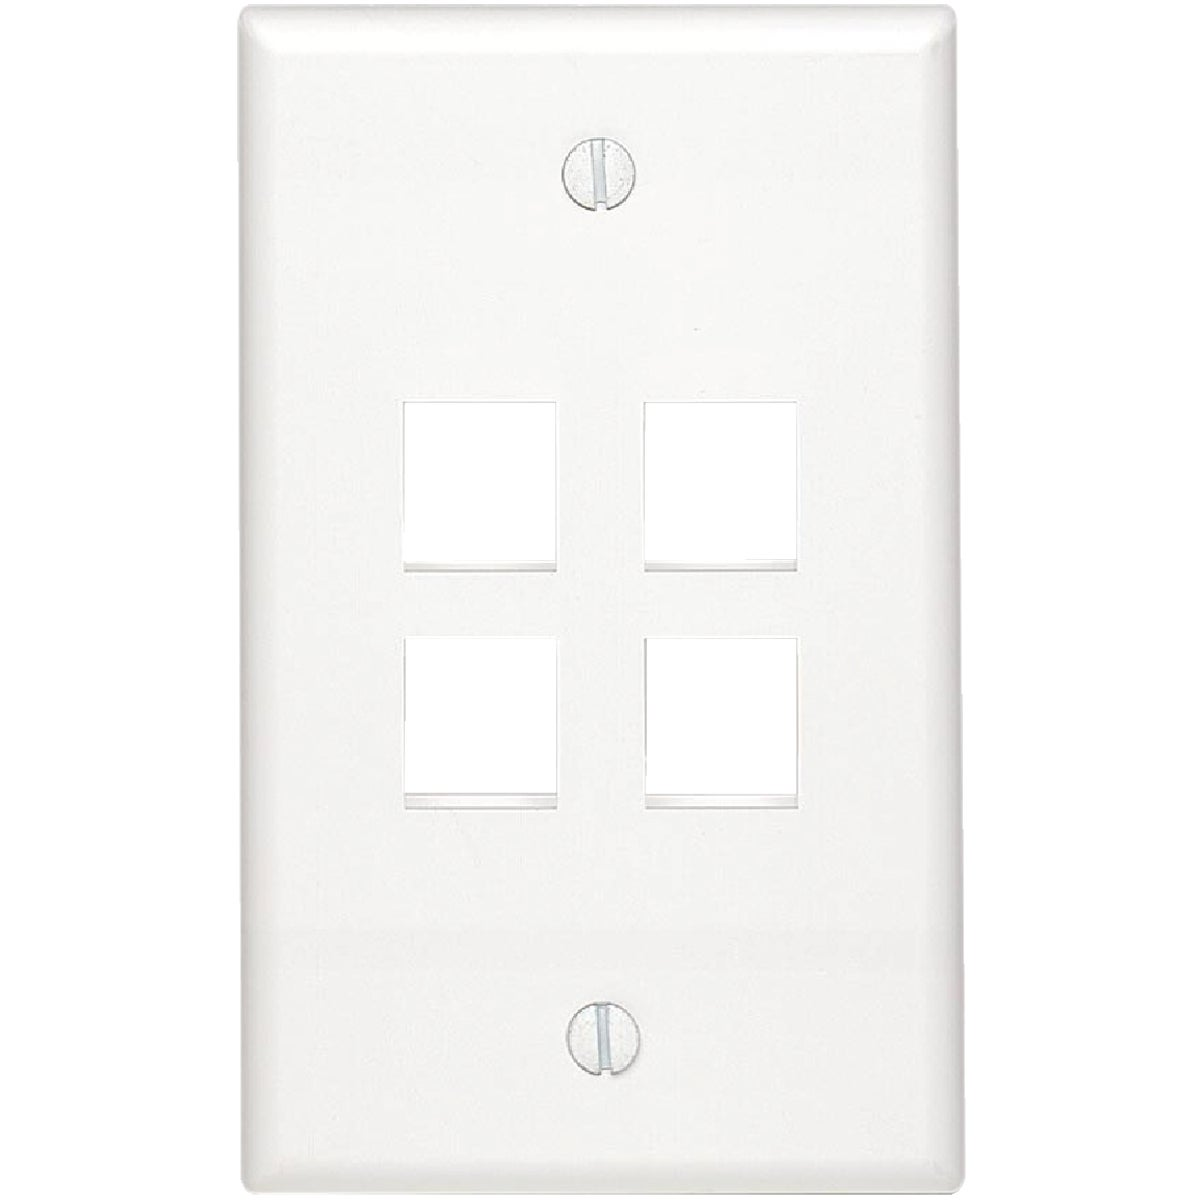 4-PORT WALL PLATE - C42-41080-4WP by Leviton Mfg Co